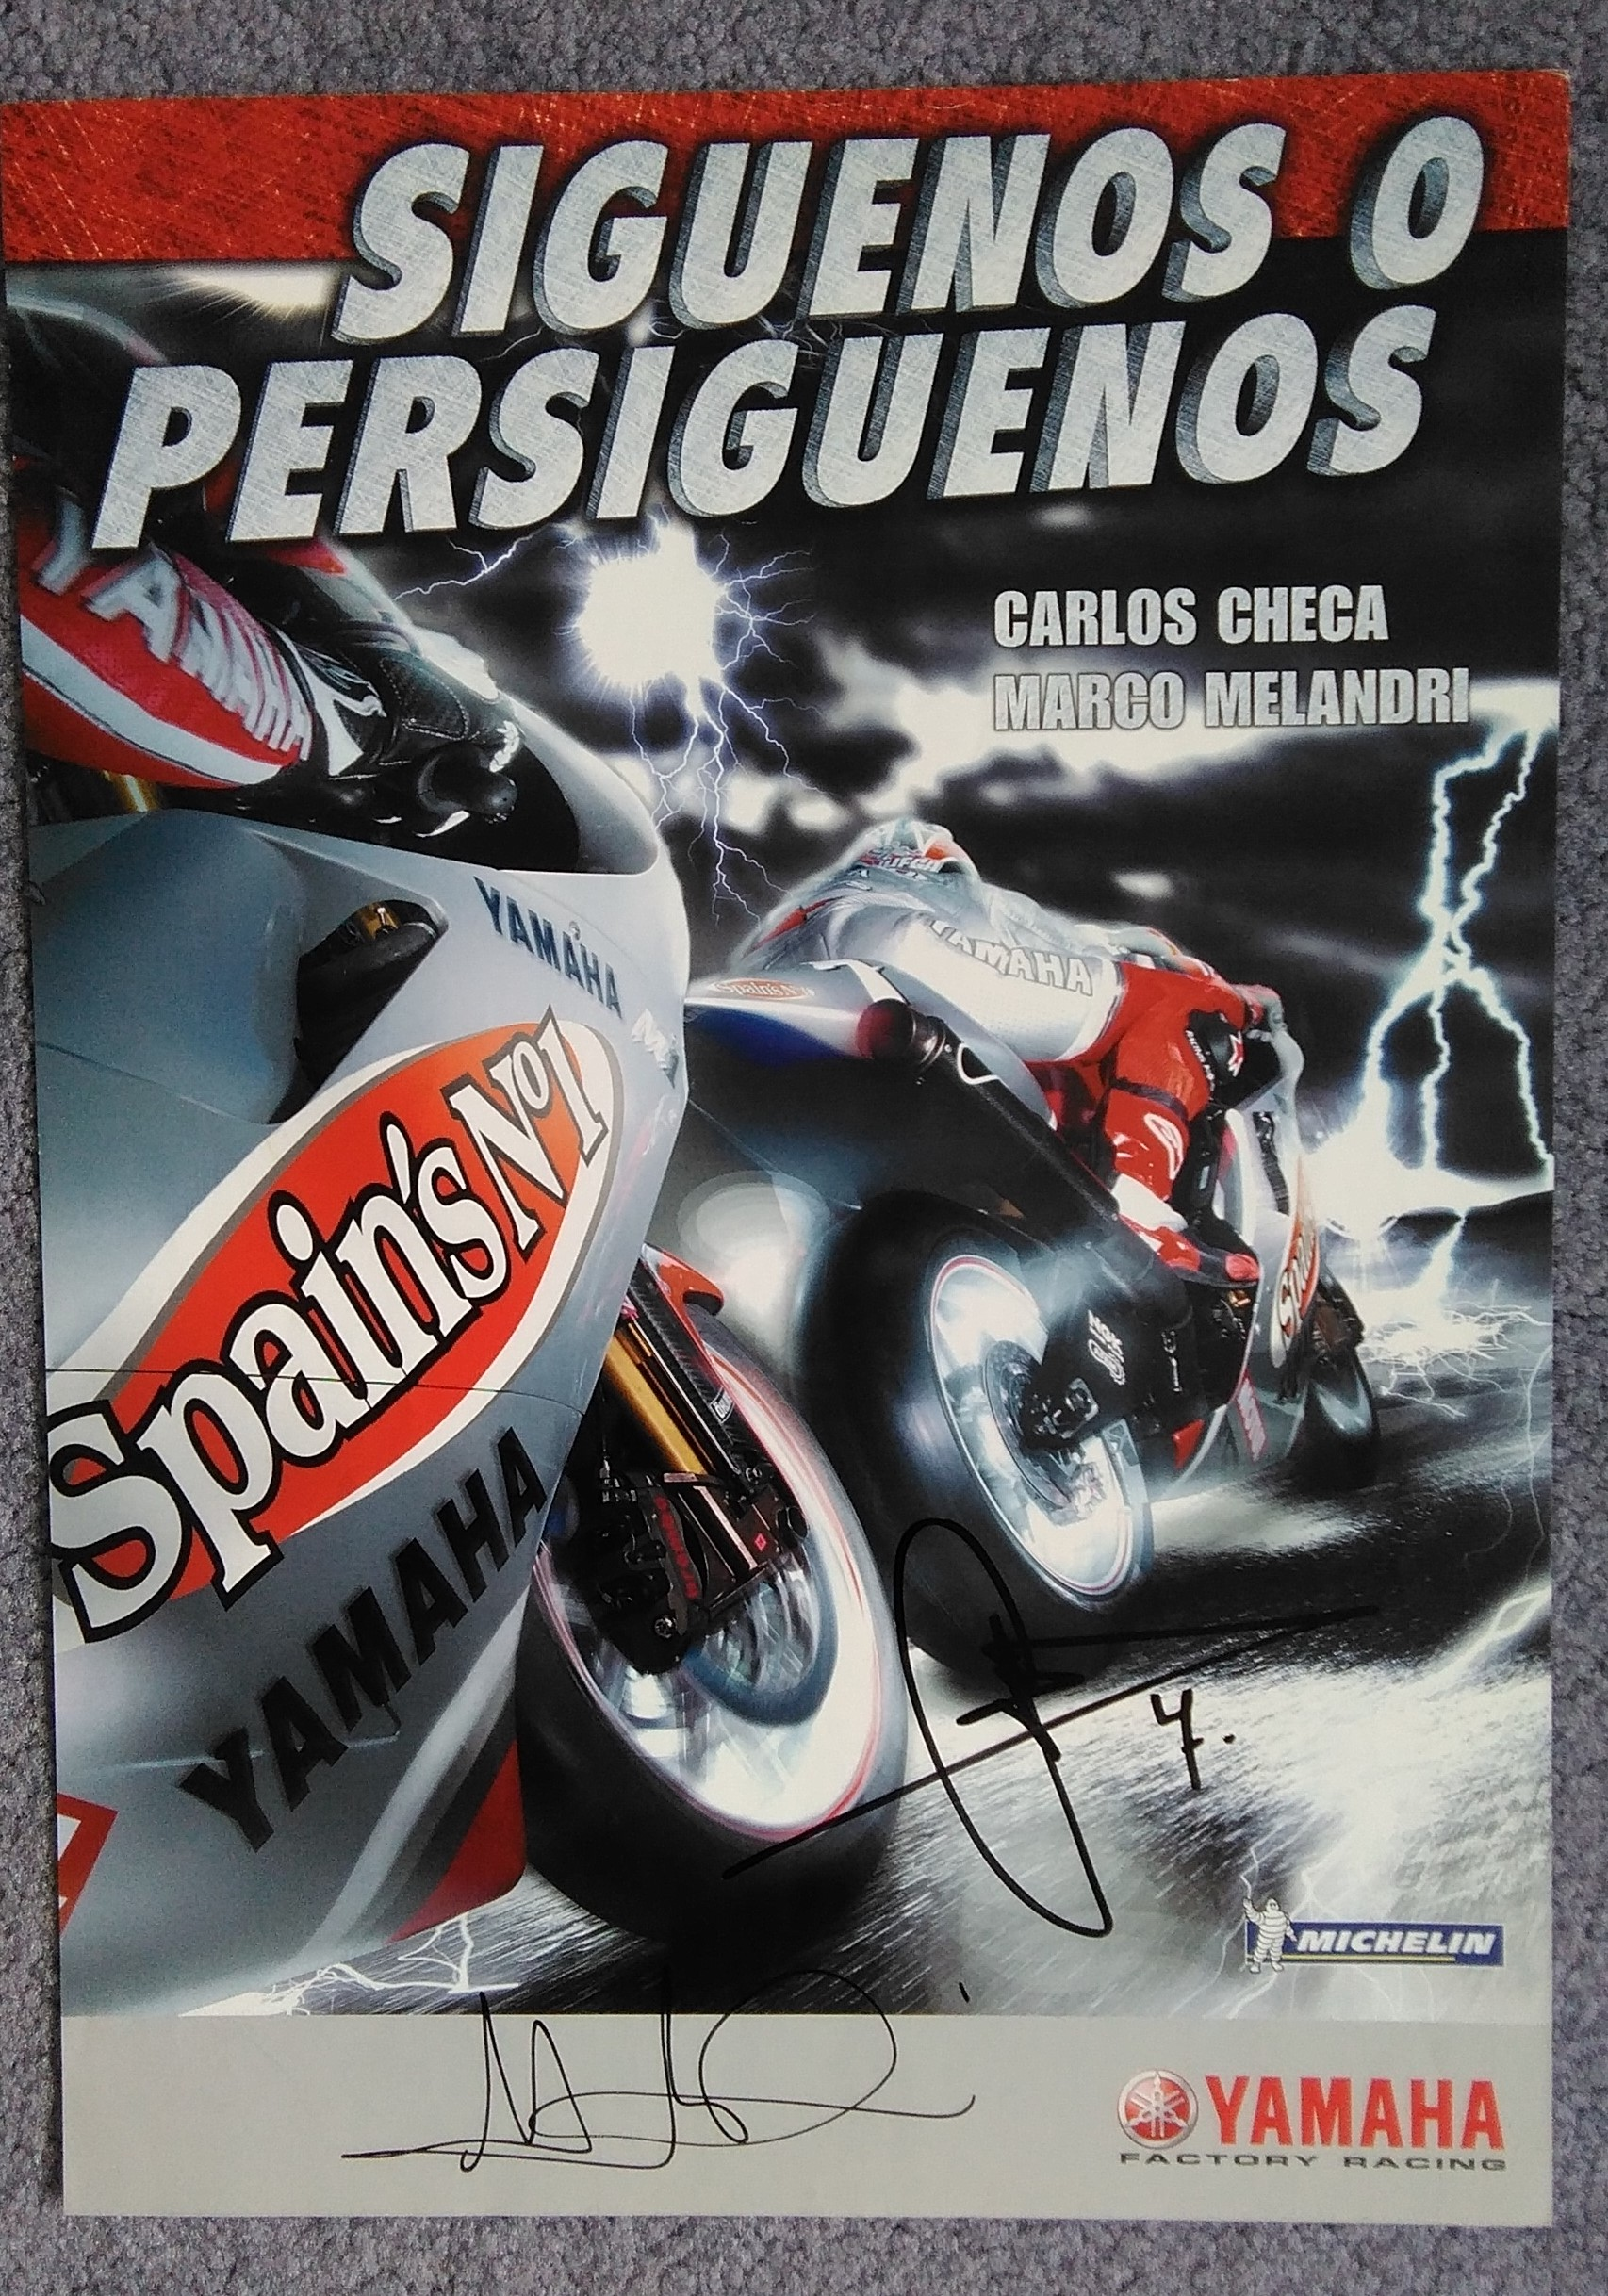 Fortuna Yamaha Signed-Melandri-Checa